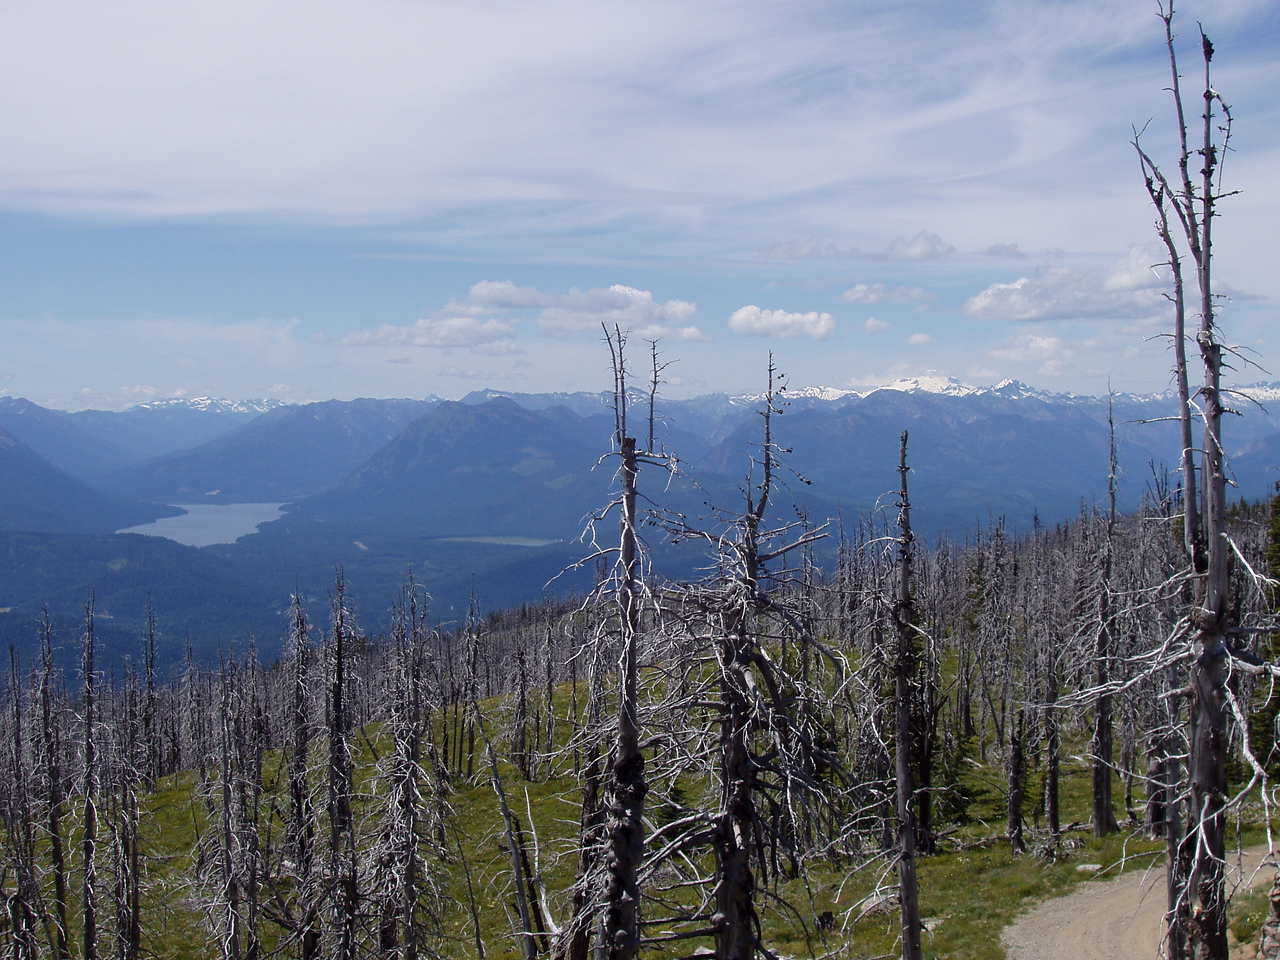 Northern most photo.  Lake Wenatchee is the leftmost lake, and Fish Lake is the little sliver in the middle of the picture.